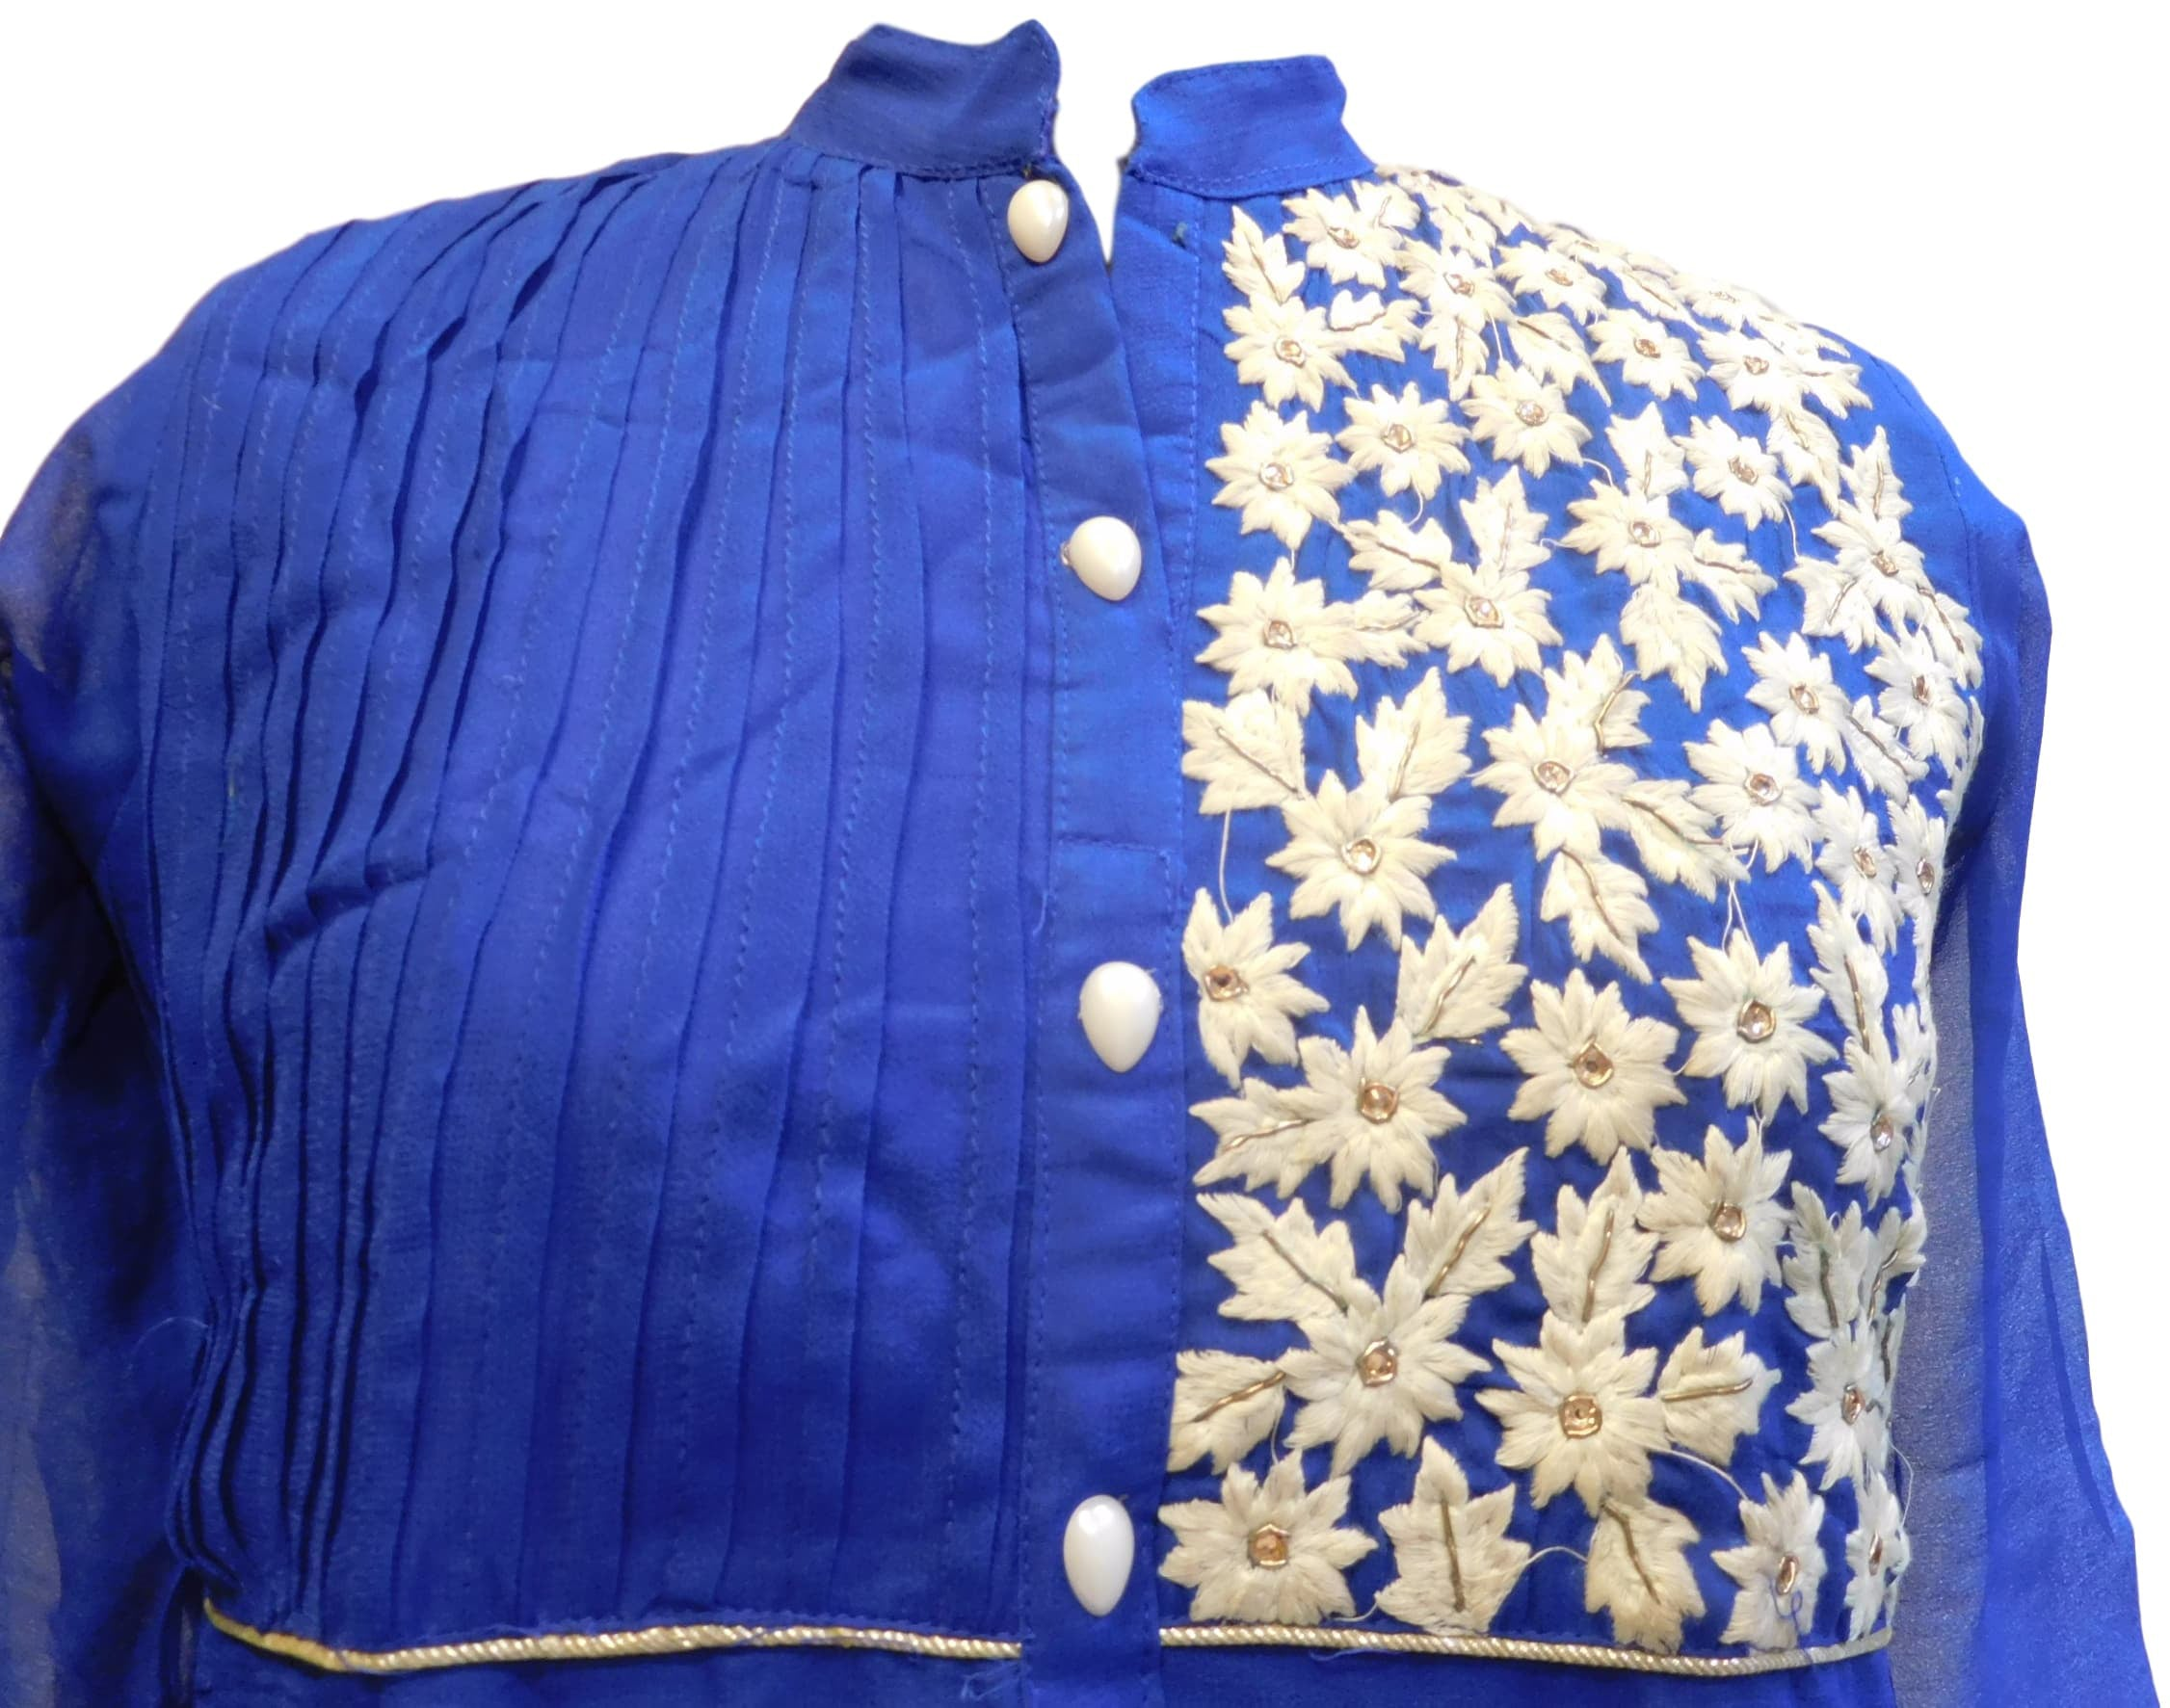 Blue Designer Georgette (Viscos) Hand Embroidery Pearl Thread Stone Bullion Work Kurti Kurta